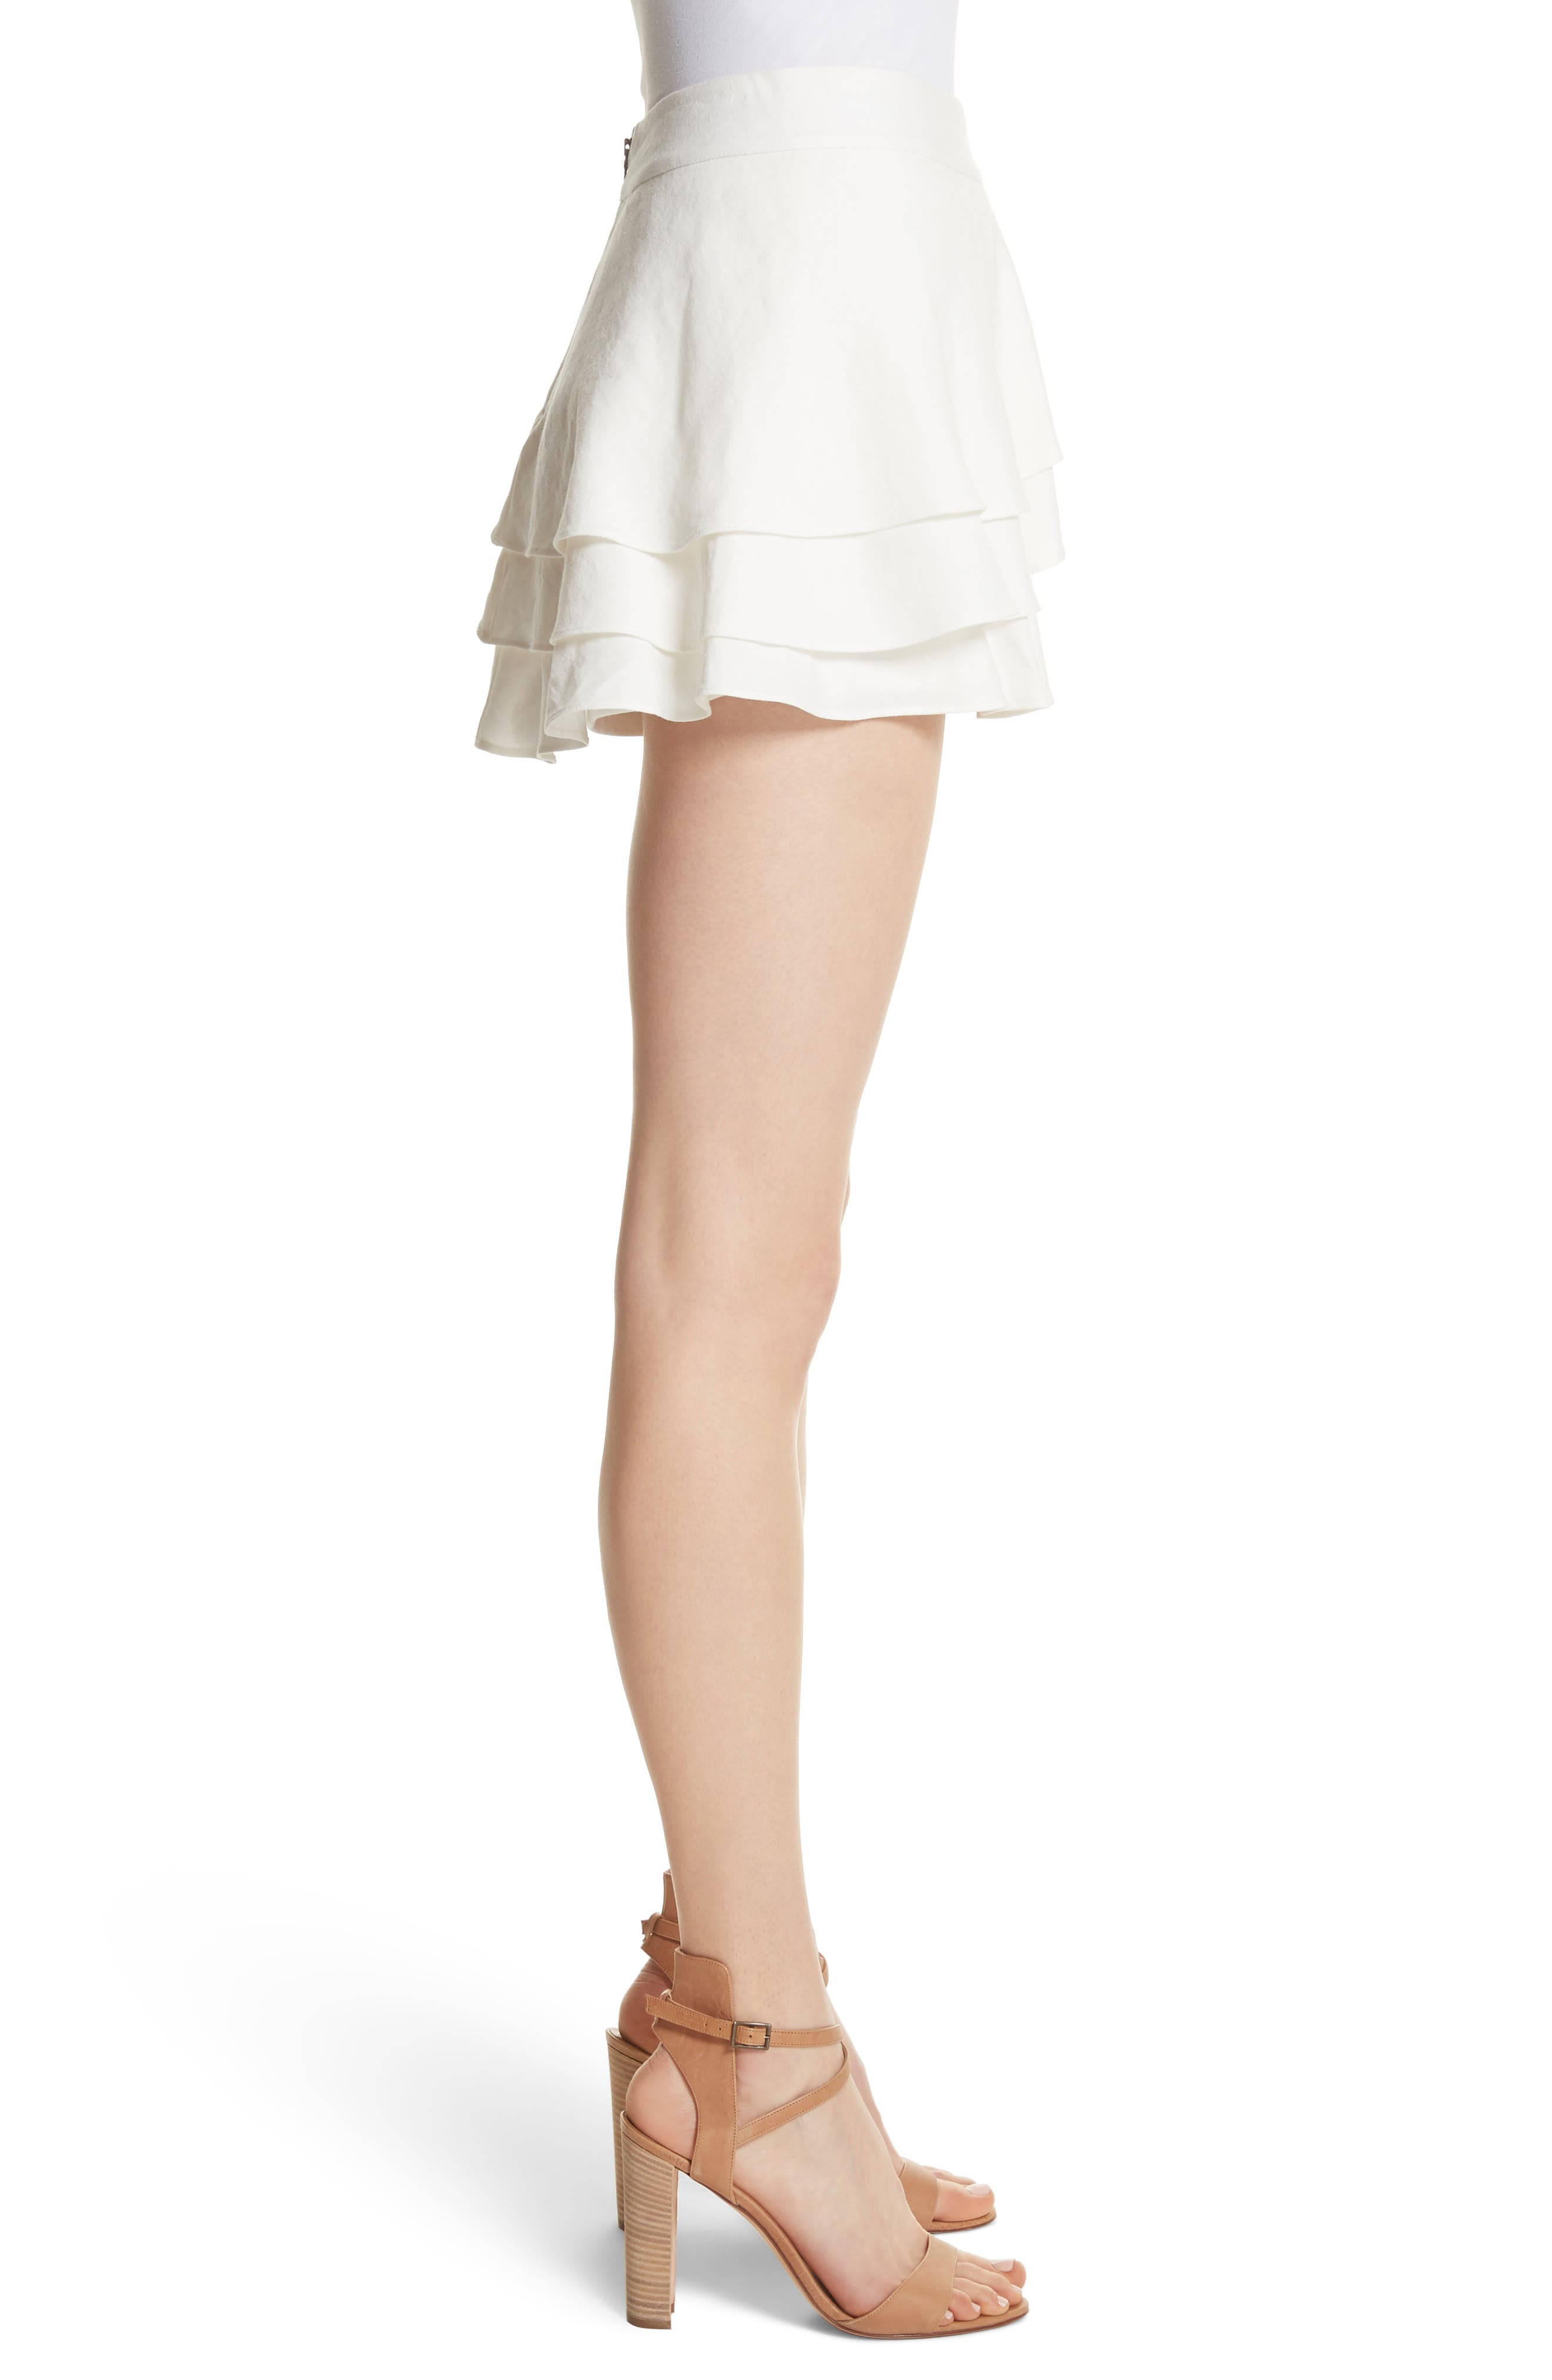 ALICE + OLIVIA,                             Mariella Tiered Ruffle Skort,                             Alternate thumbnail 3, color,                             127